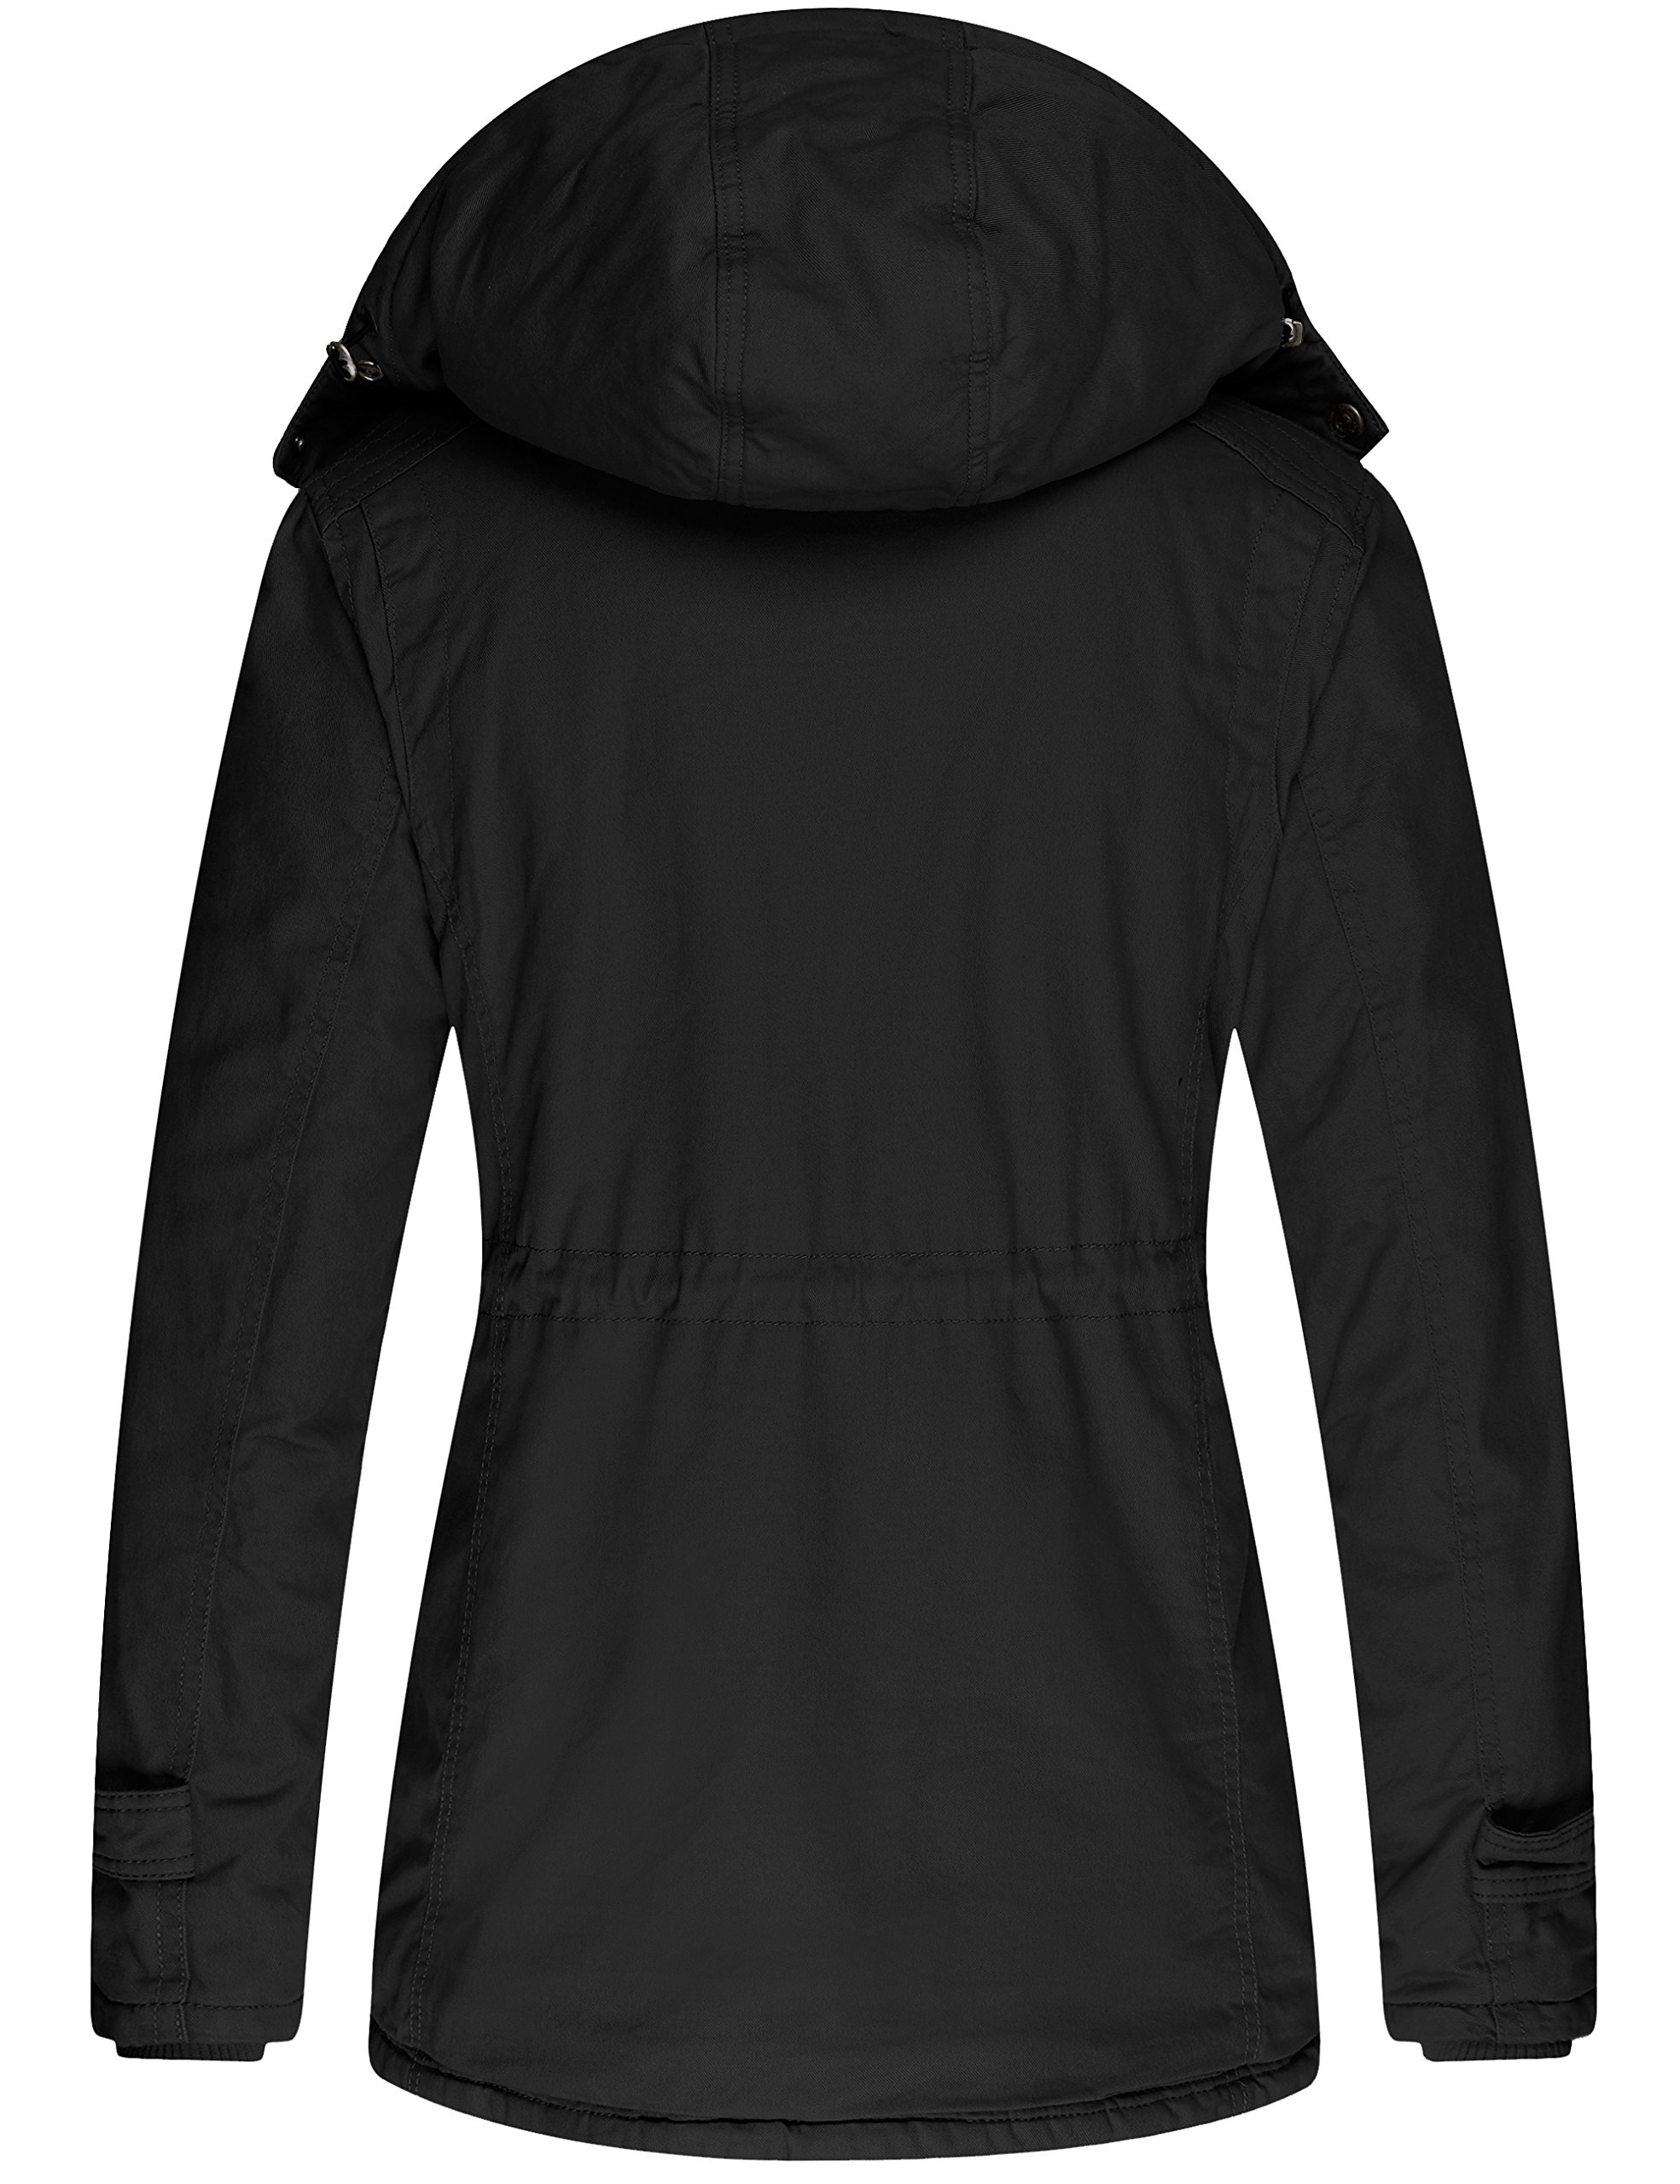 Wantdo Women's Winter Thicken Jacket Cotton Coat with Removable Hood (Black, US M) by Wantdo (Image #2)